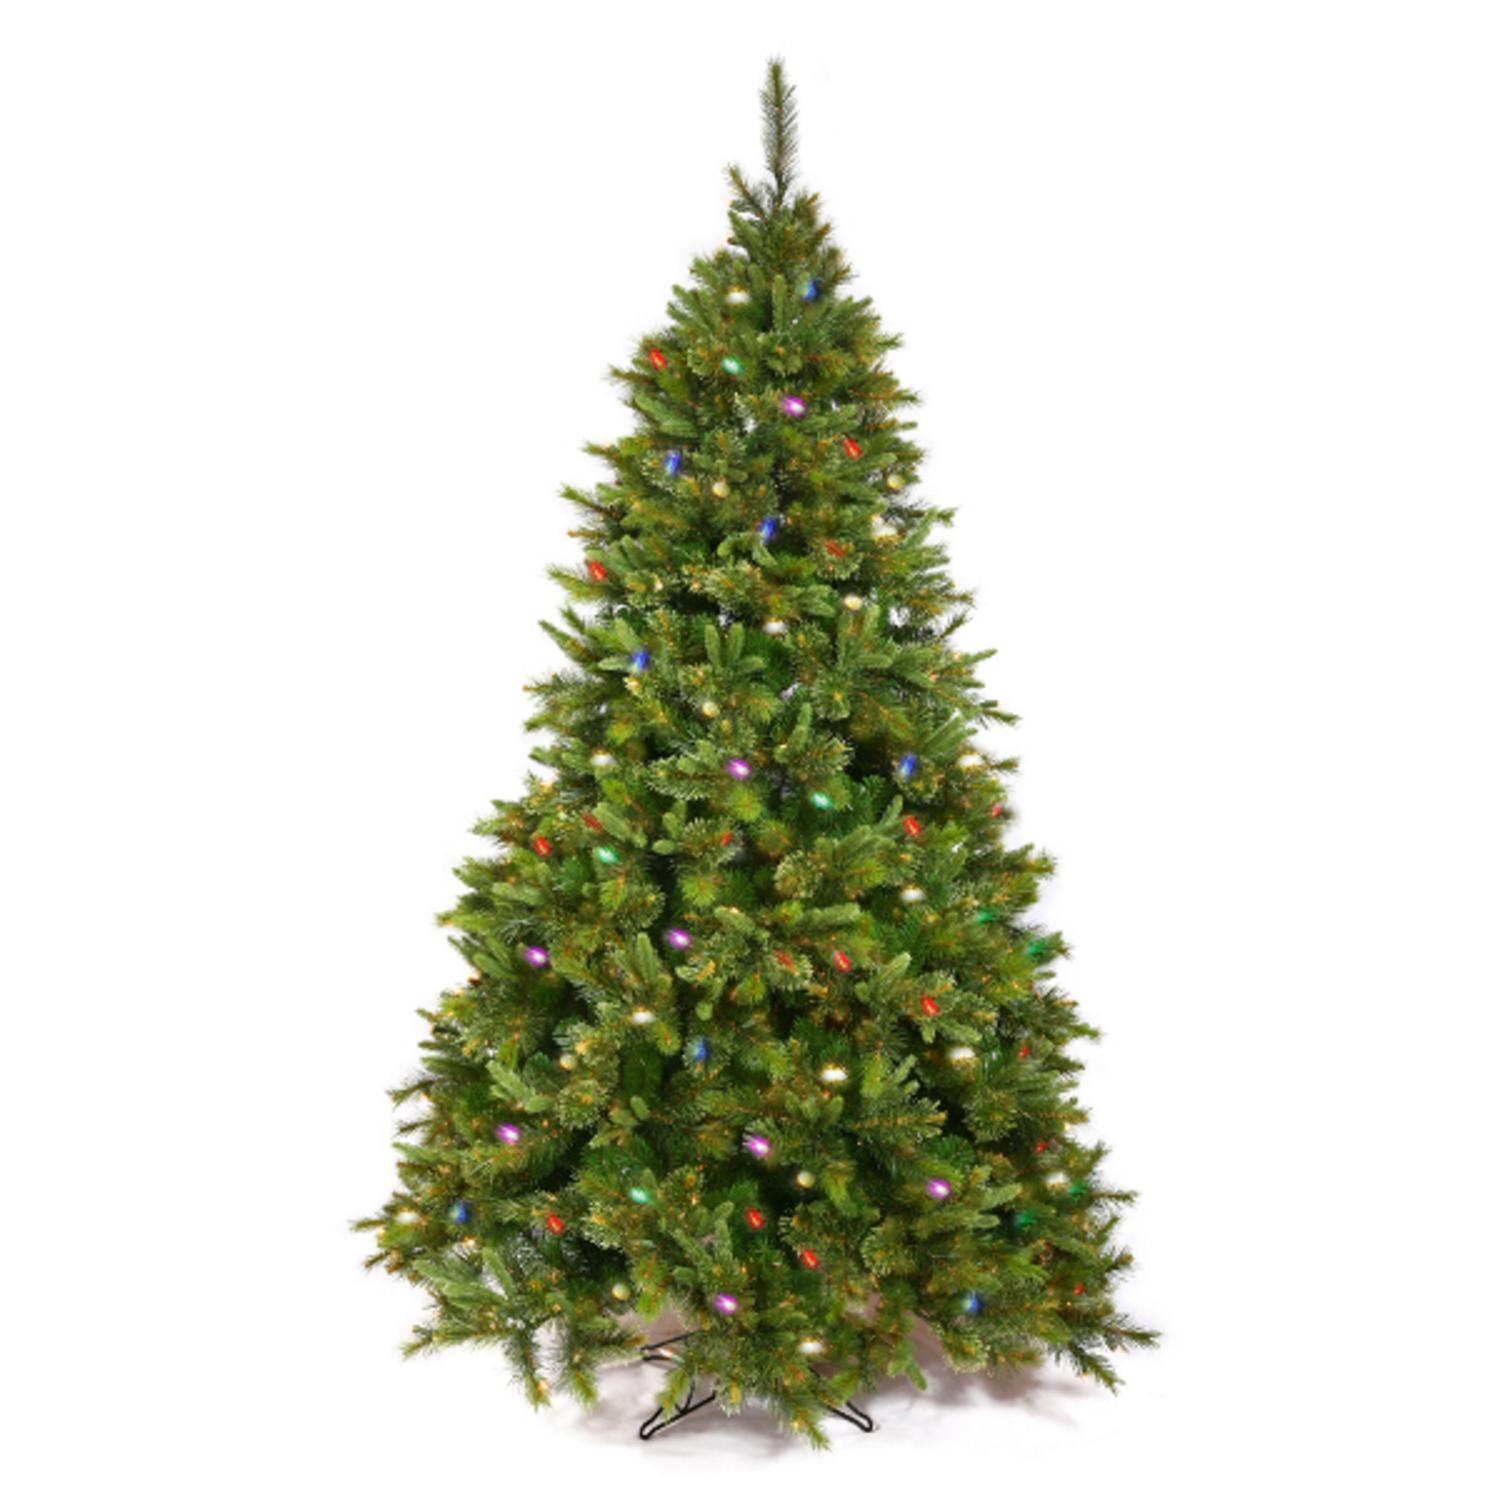 3' Pre-Lit Mixed Cashmere Pine Medium Artificial Christmas Tree - Multi-Color Dura Lights